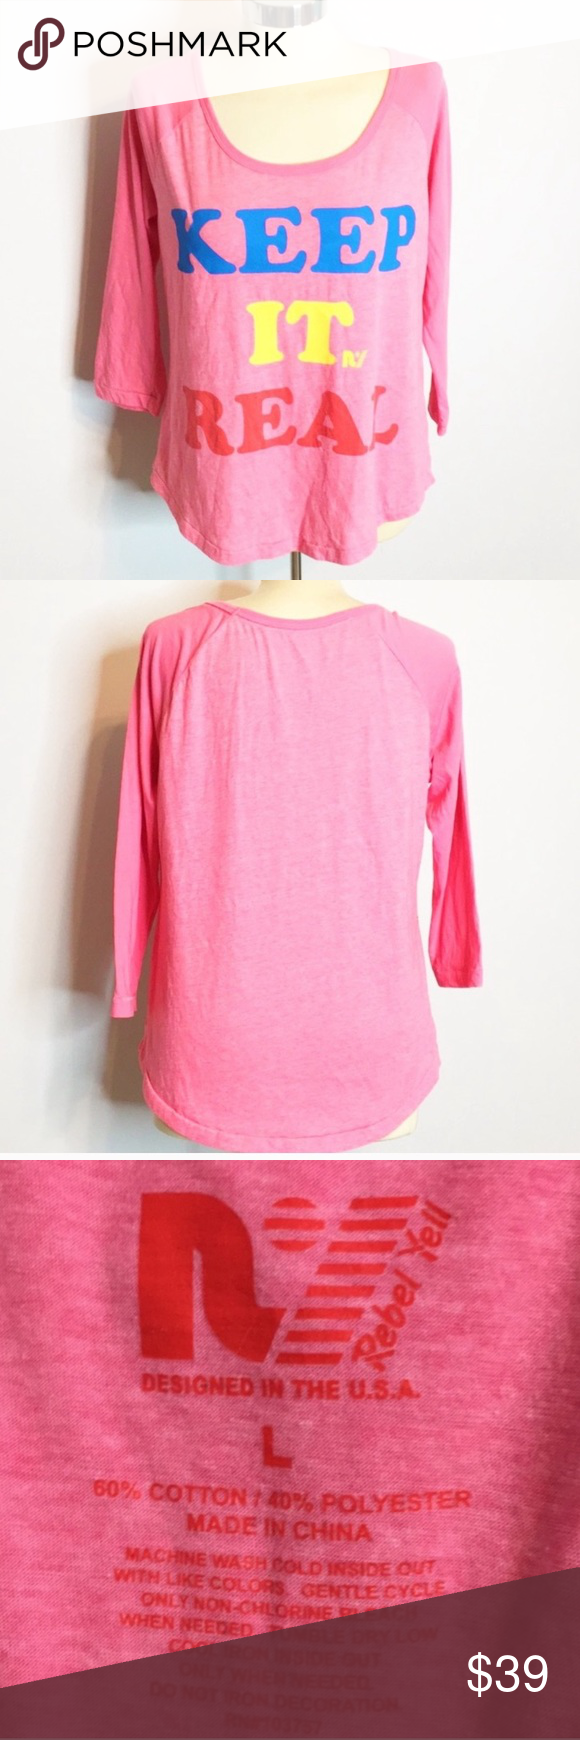 Rebel Yell keep it real raglan graphic tee Rebel Yell keep it real raglan graphic  Excellent condition   🚫no trades 🚫no holds 🚫no modeling 🚫no lowballing ✅reasonable offers ONLY, offers more than 50% off will result in being blocked  AG06853 Rebel Yell Tops Blouses